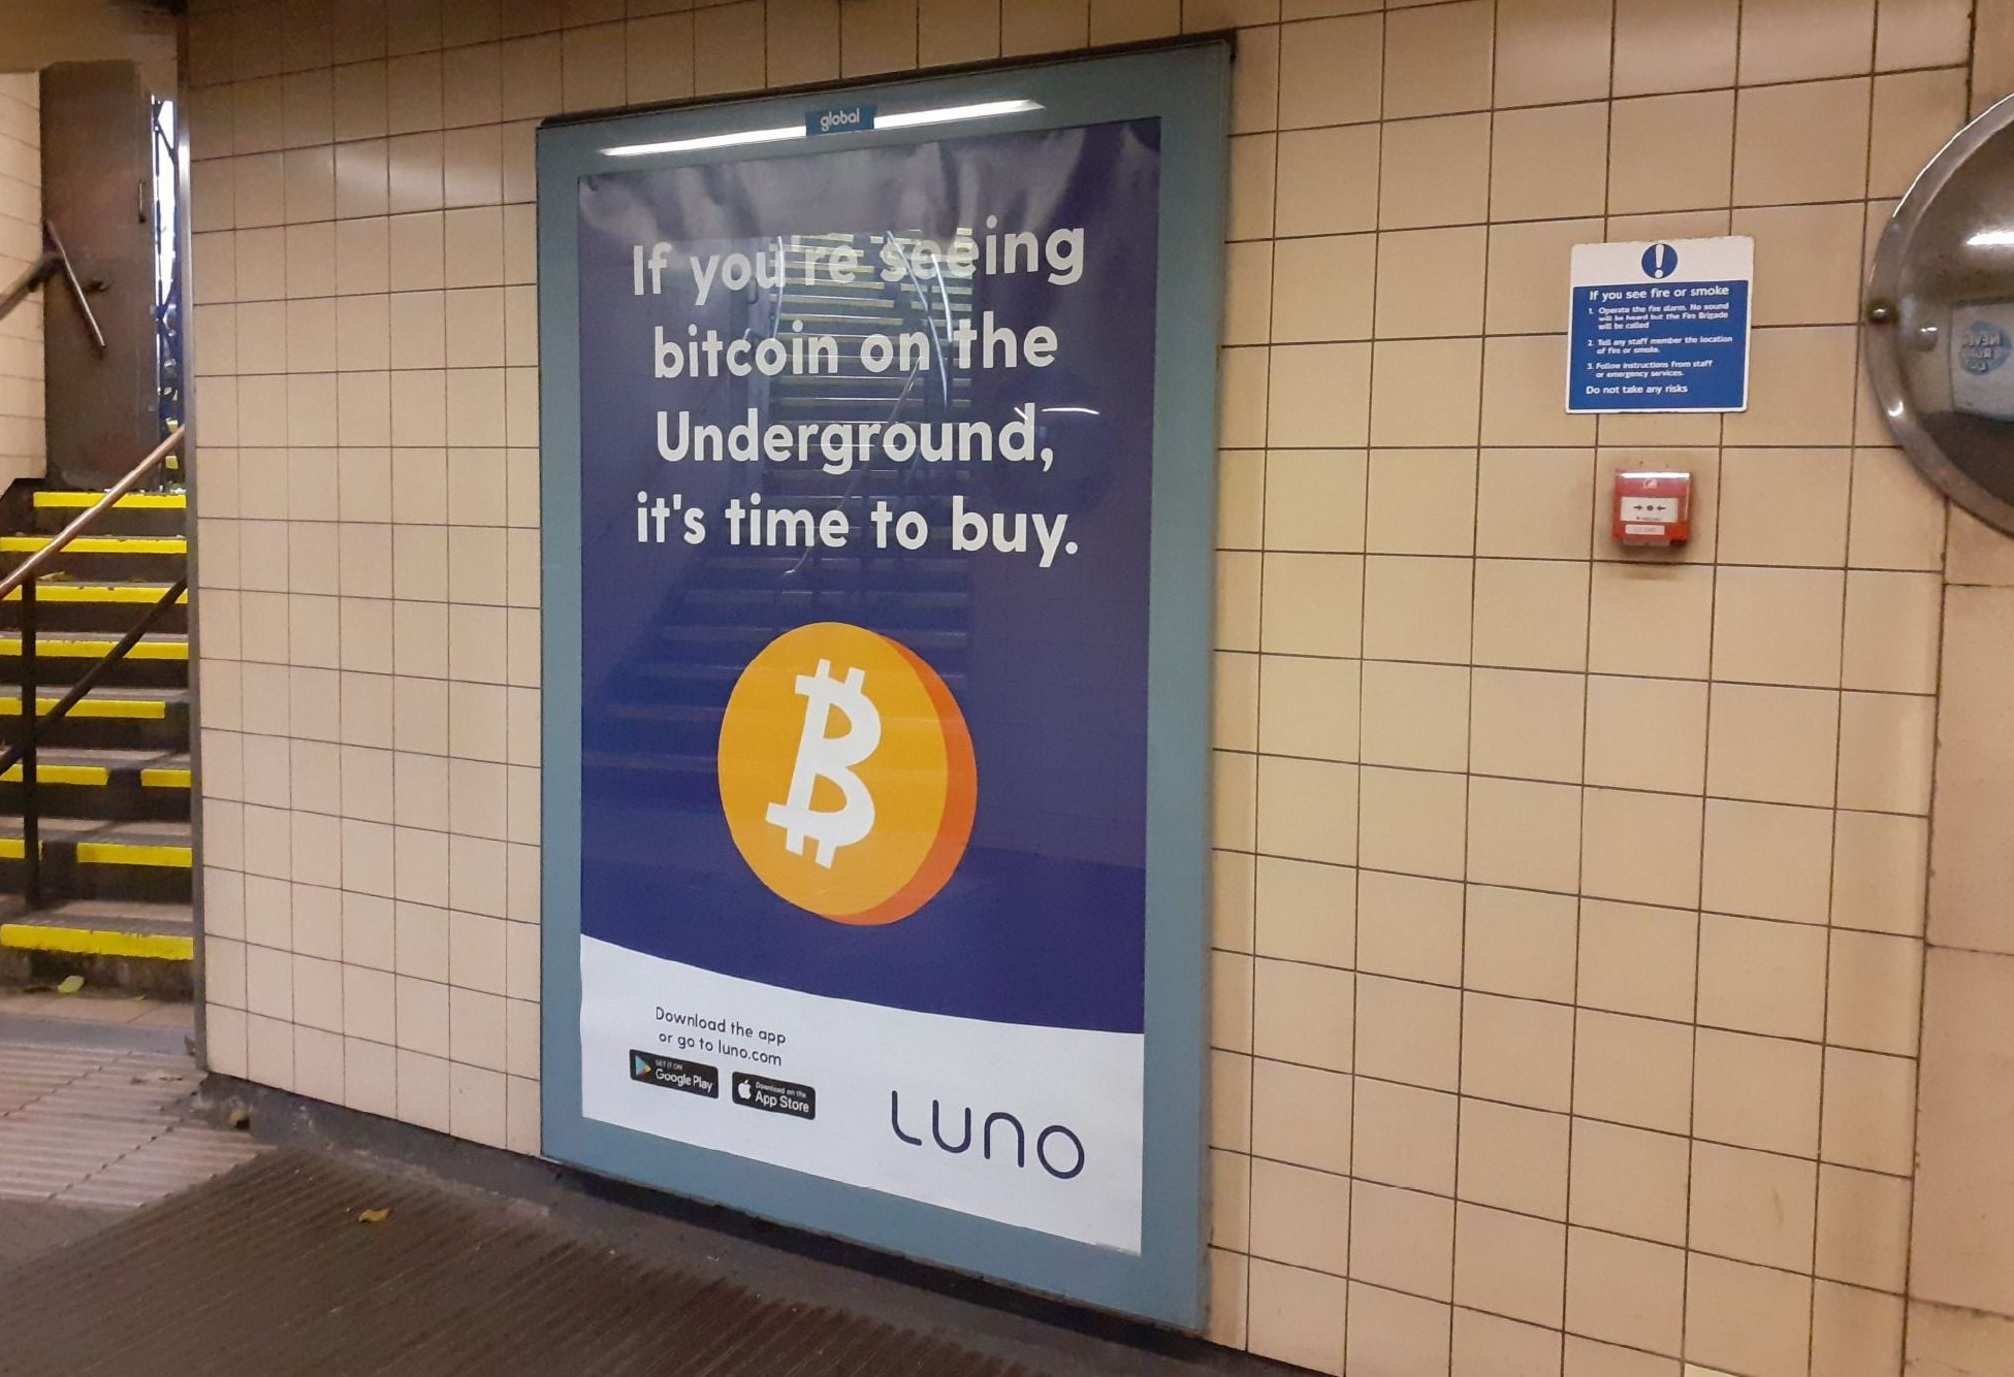 UK Authority Bans 'Time to Buy' Bitcoin Ad for Being Misleading and Irresponsible